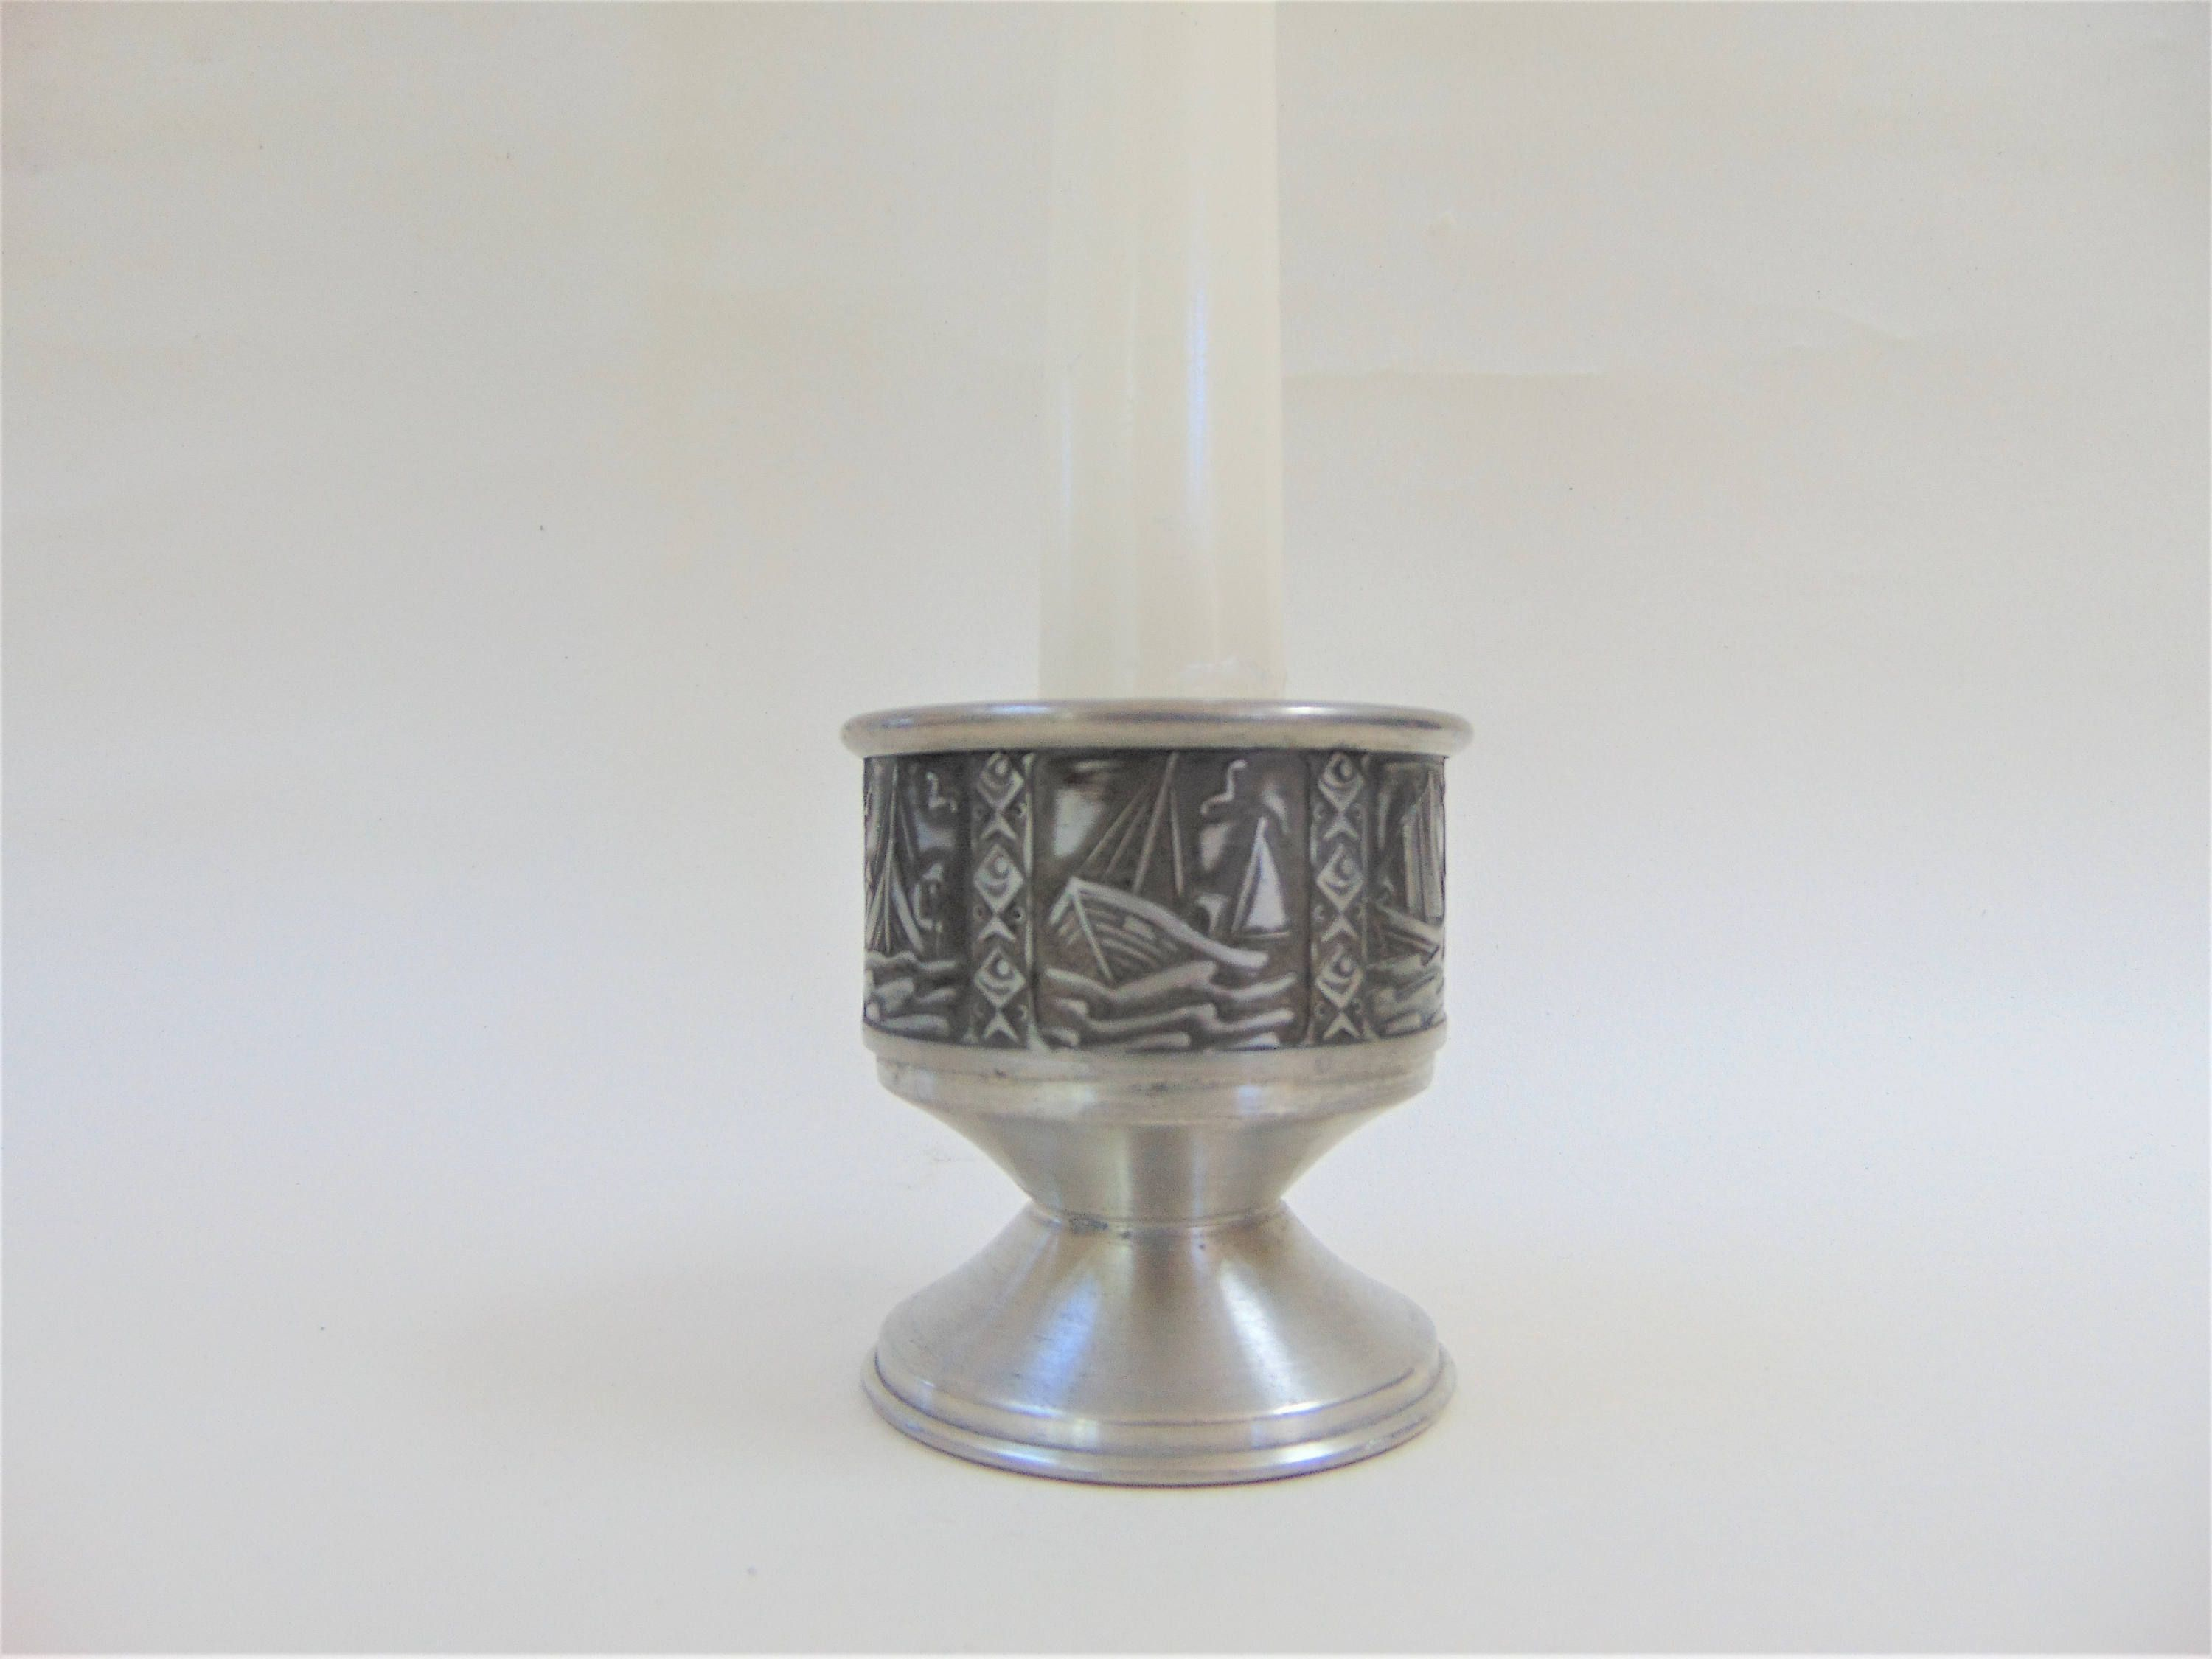 mastad pewter candlestick small size vintage norwegian metalware mastad pewter candlestick small size vintage norwegian metalware mid century home decor interiors collectables